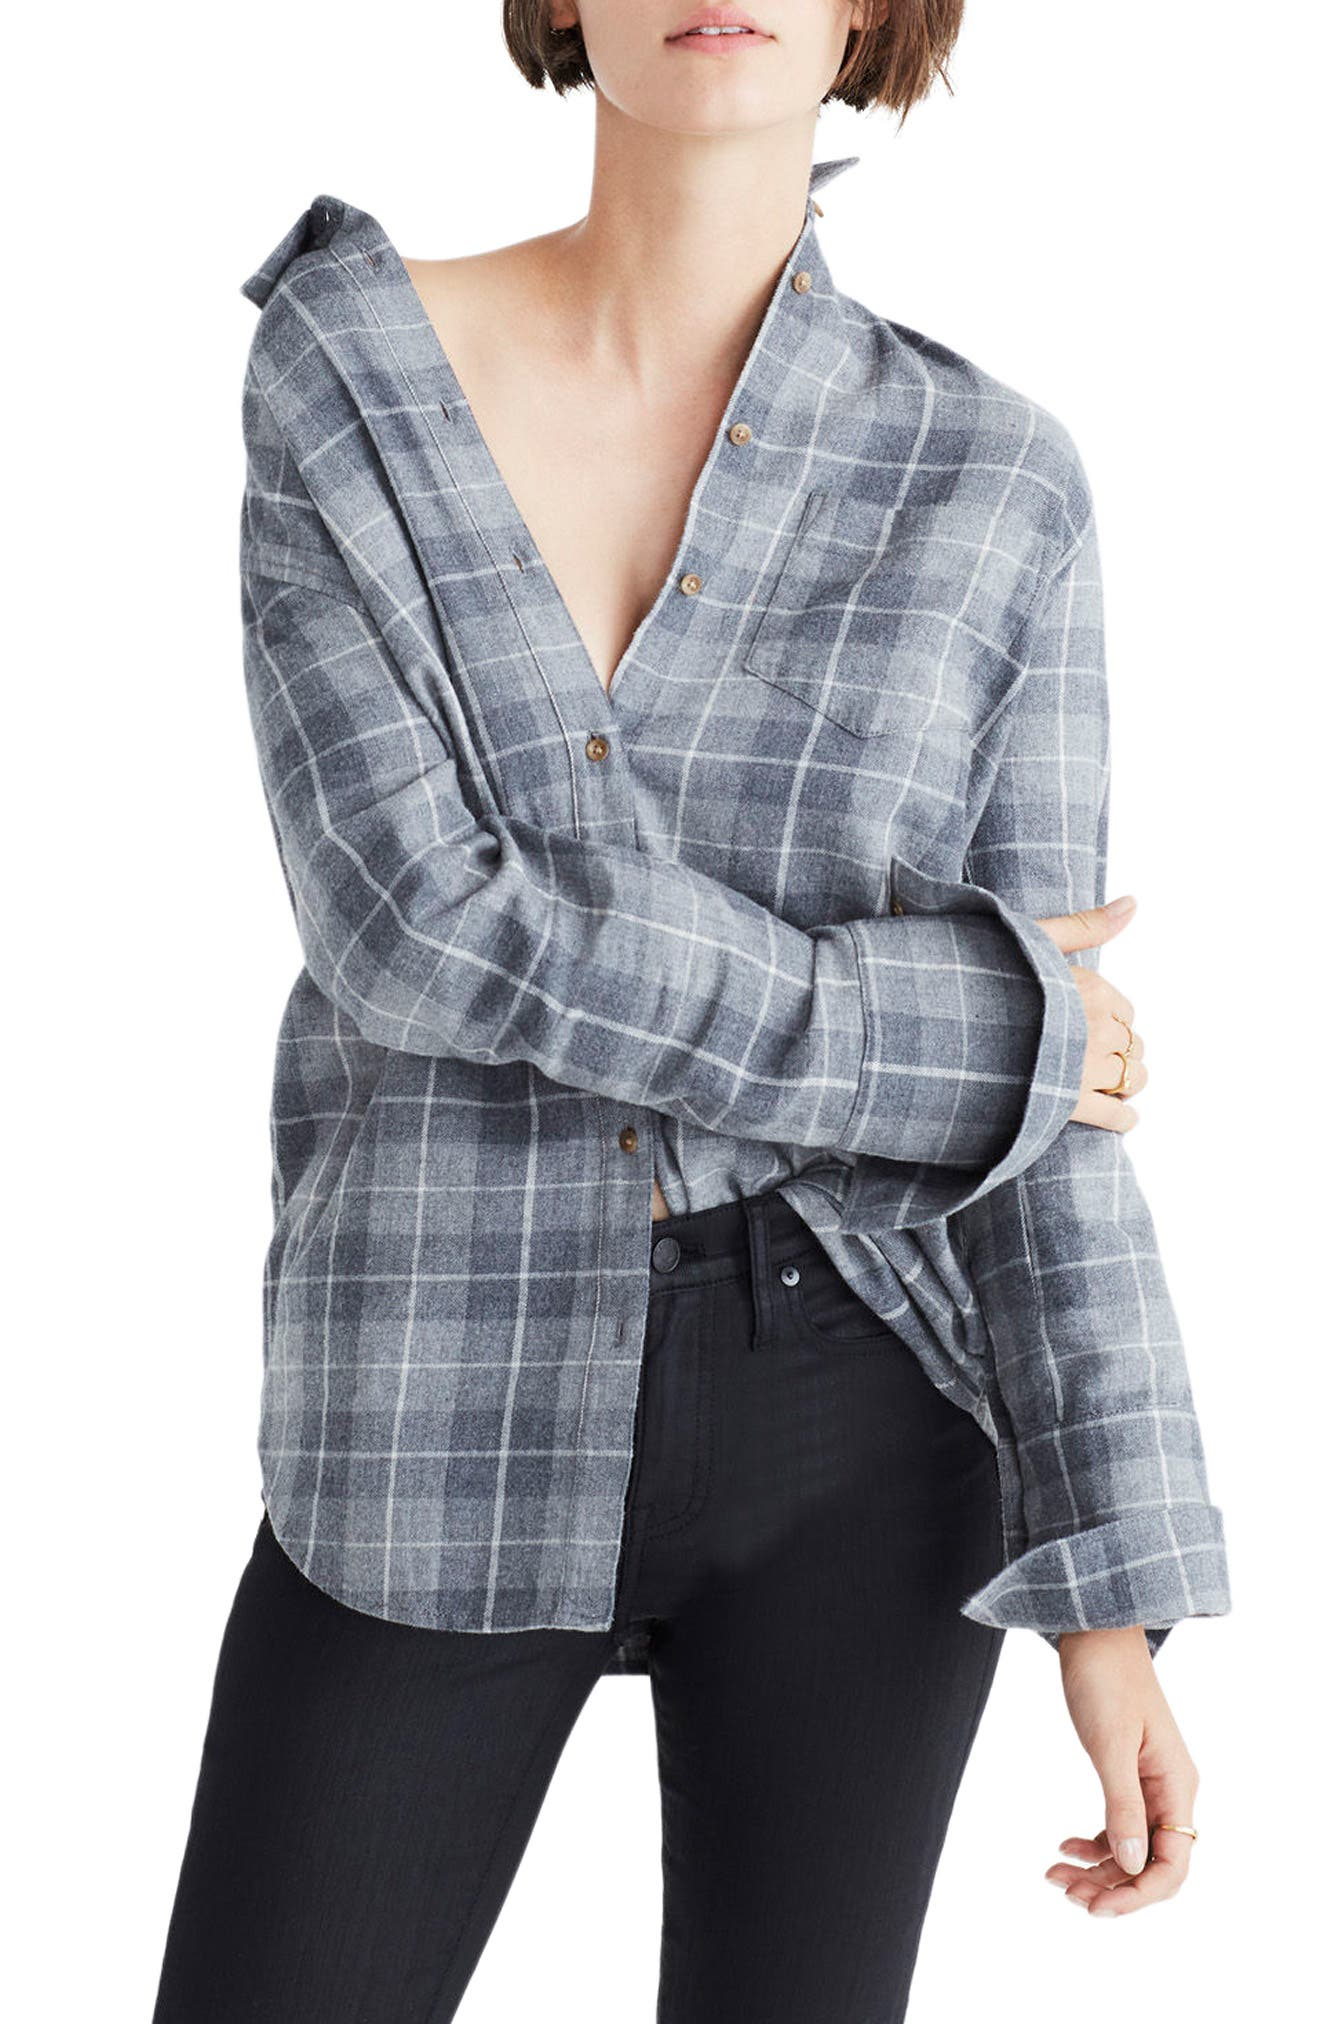 Bristol Plaid Flannel Shirt,                             Main thumbnail 1, color,                             020